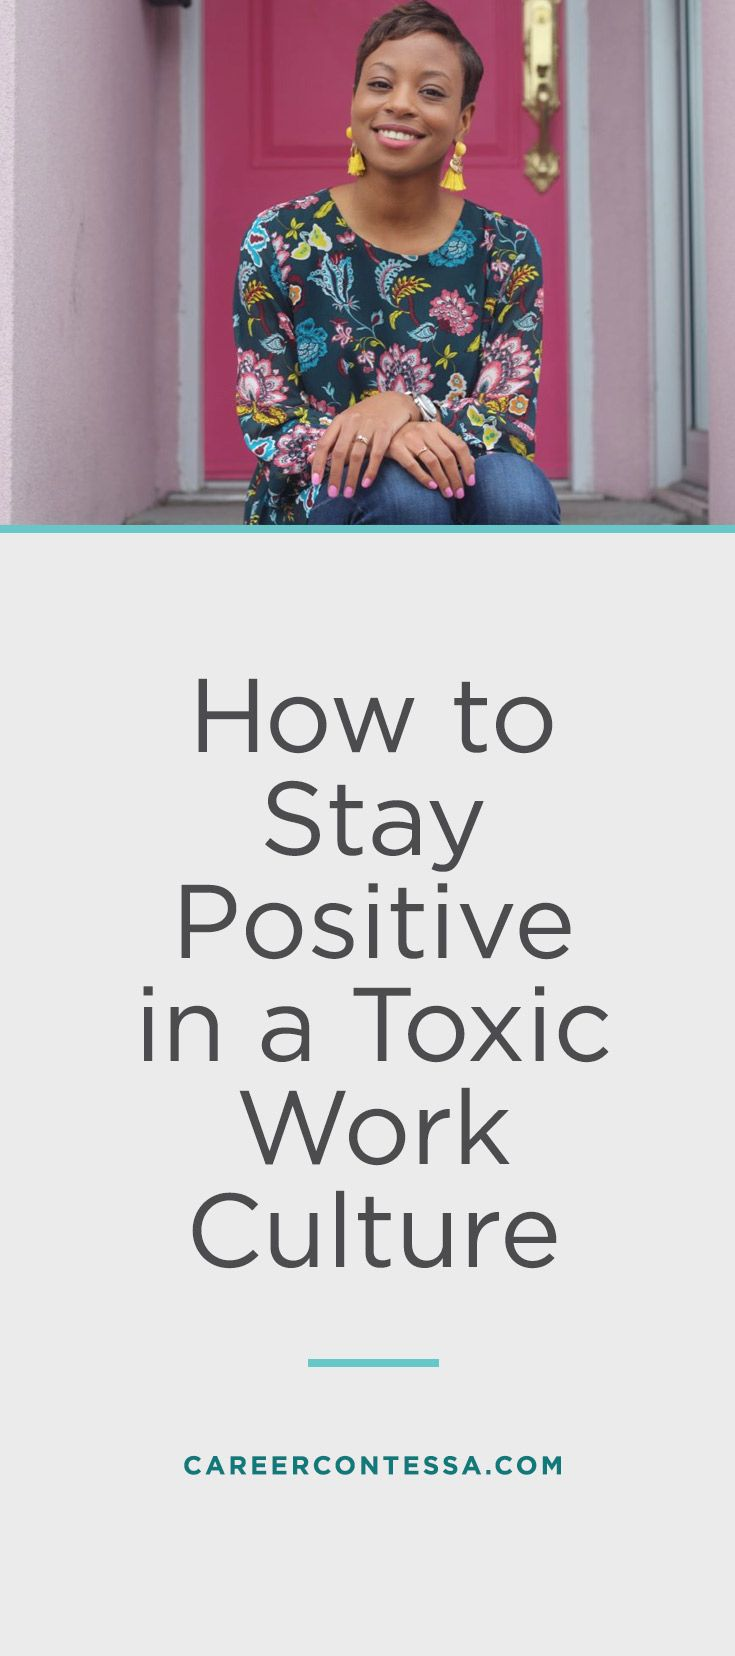 We tend to assume that the hardest part of the job is doing the position itself. But then one morning, you wake up dreading going to work because of your negative coworkers and its toxic company culture. And you ask yourself, can I change the environment of your workplace for the better? Or is it just a lost cause? Let's find out how to stay positive in a negative work place.   CareerContessa.com